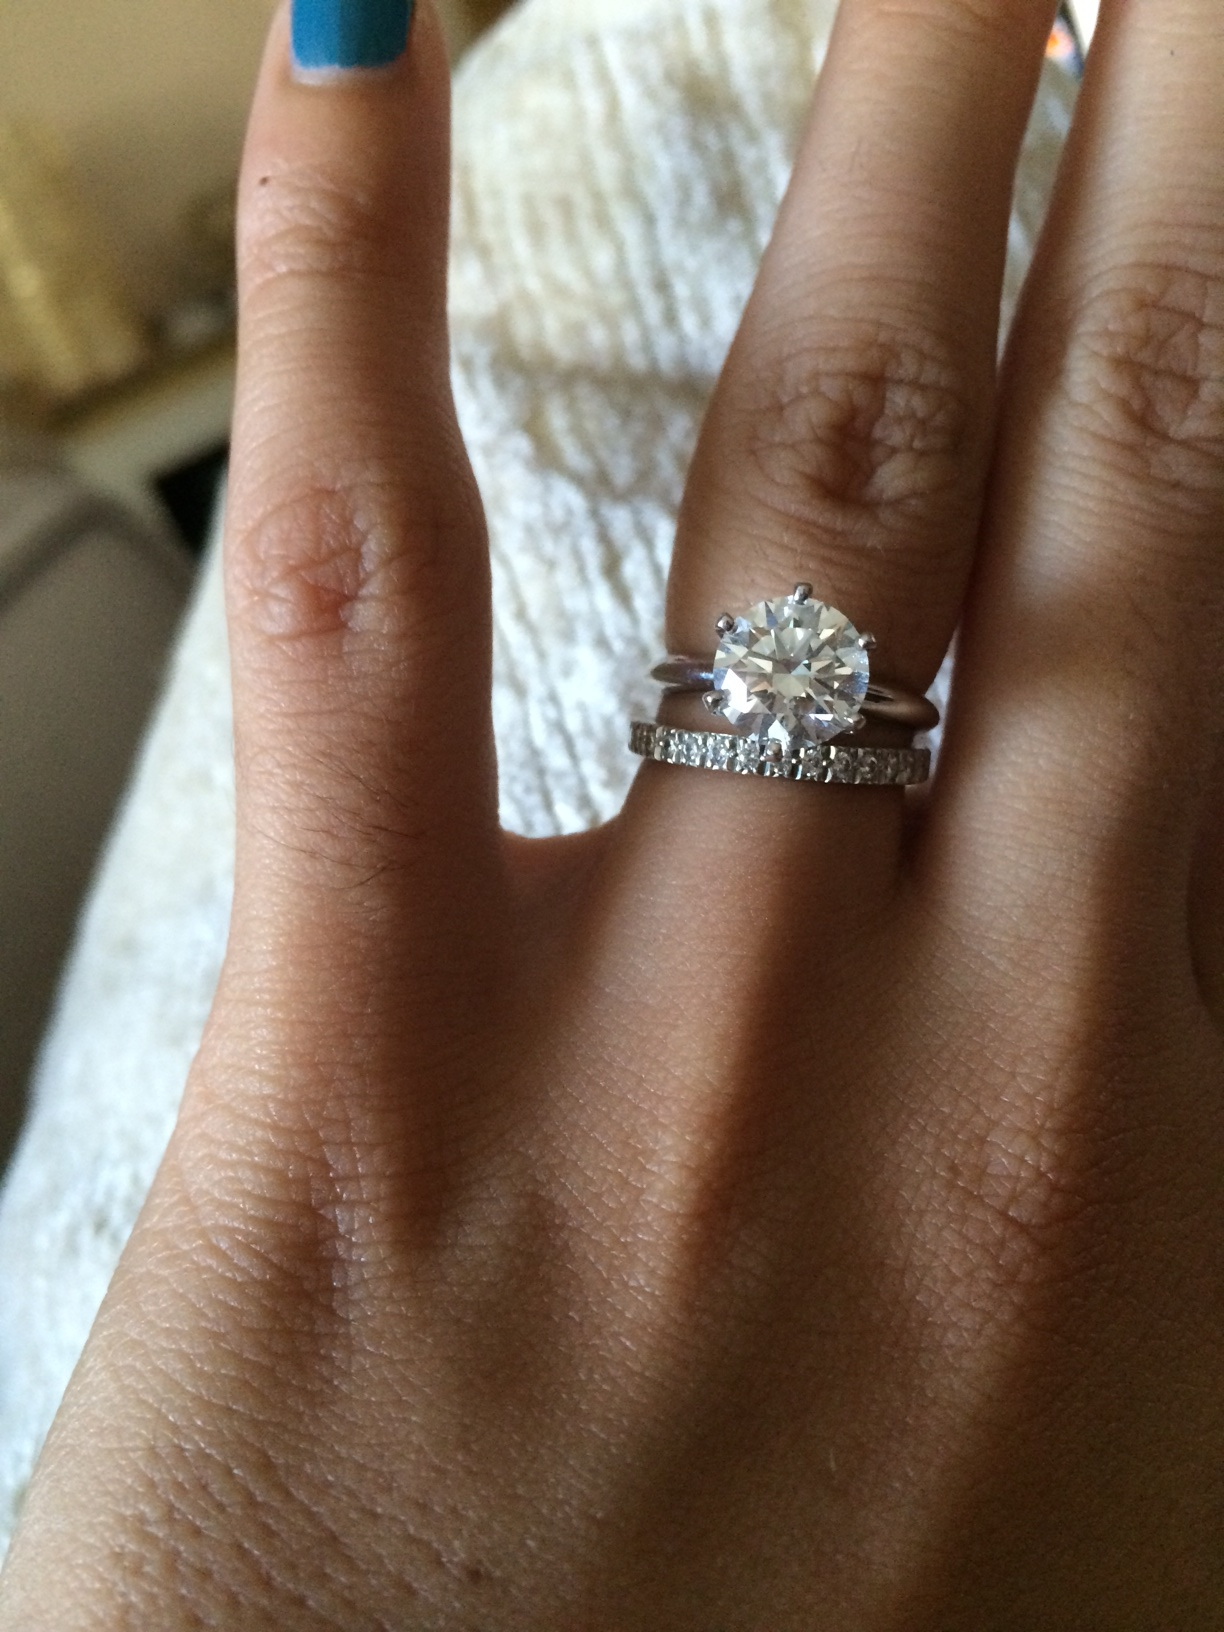 show me your wedding band with tiffanystyle solitaire e ring tiffany wedding bands It s not too much or too little Just enough sparkle to not take away from my 2 carat rock Both the engagement ring and wedding band are from Tiffany s